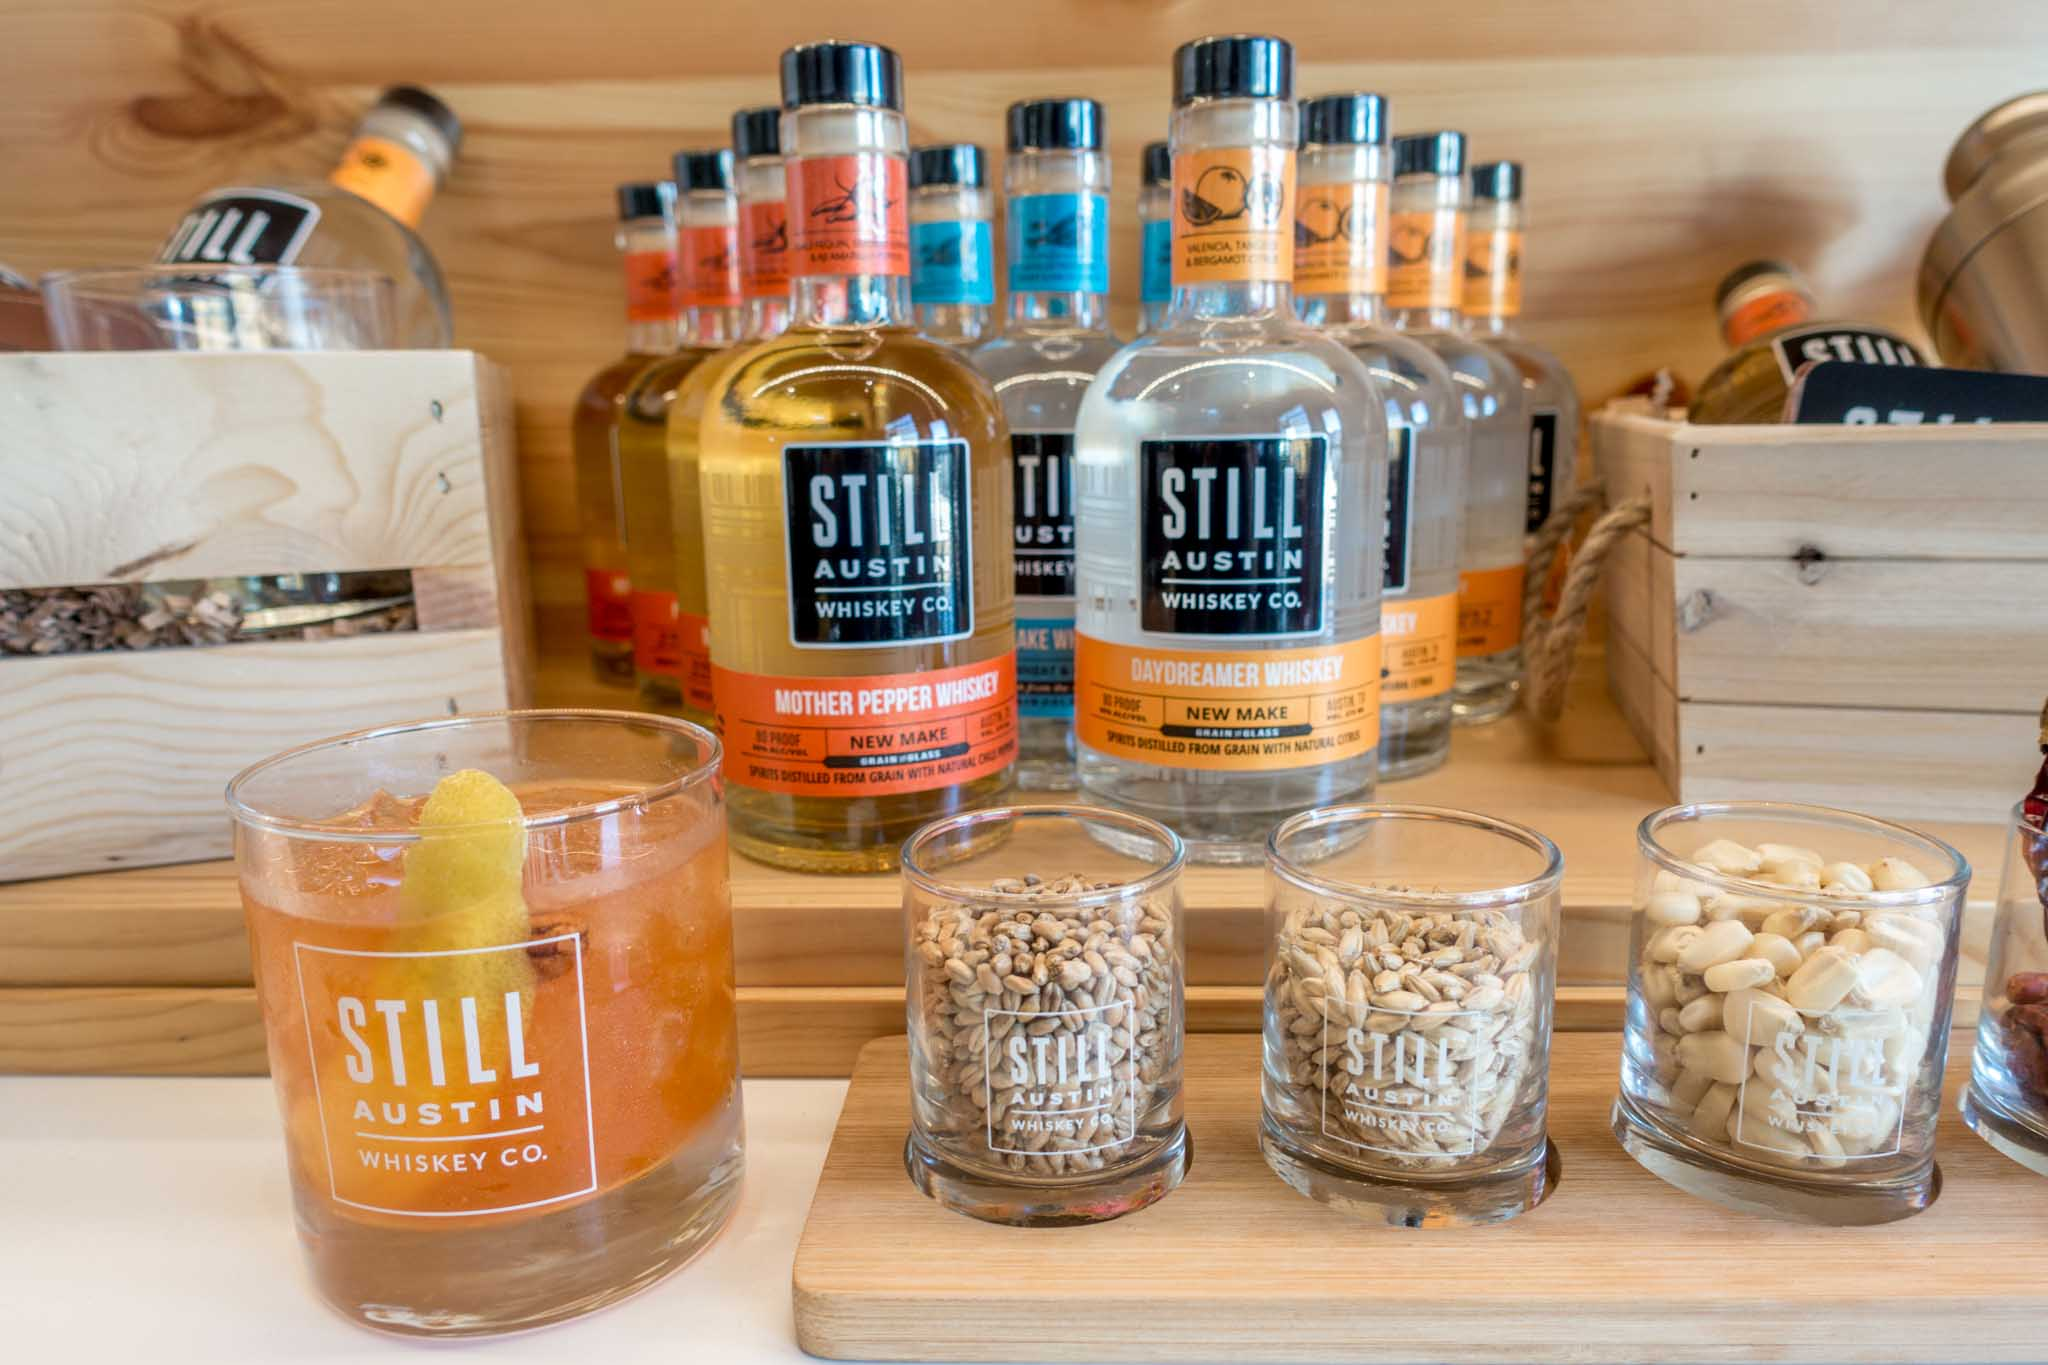 Bottles and cocktail at Still Austin Whiskey Co